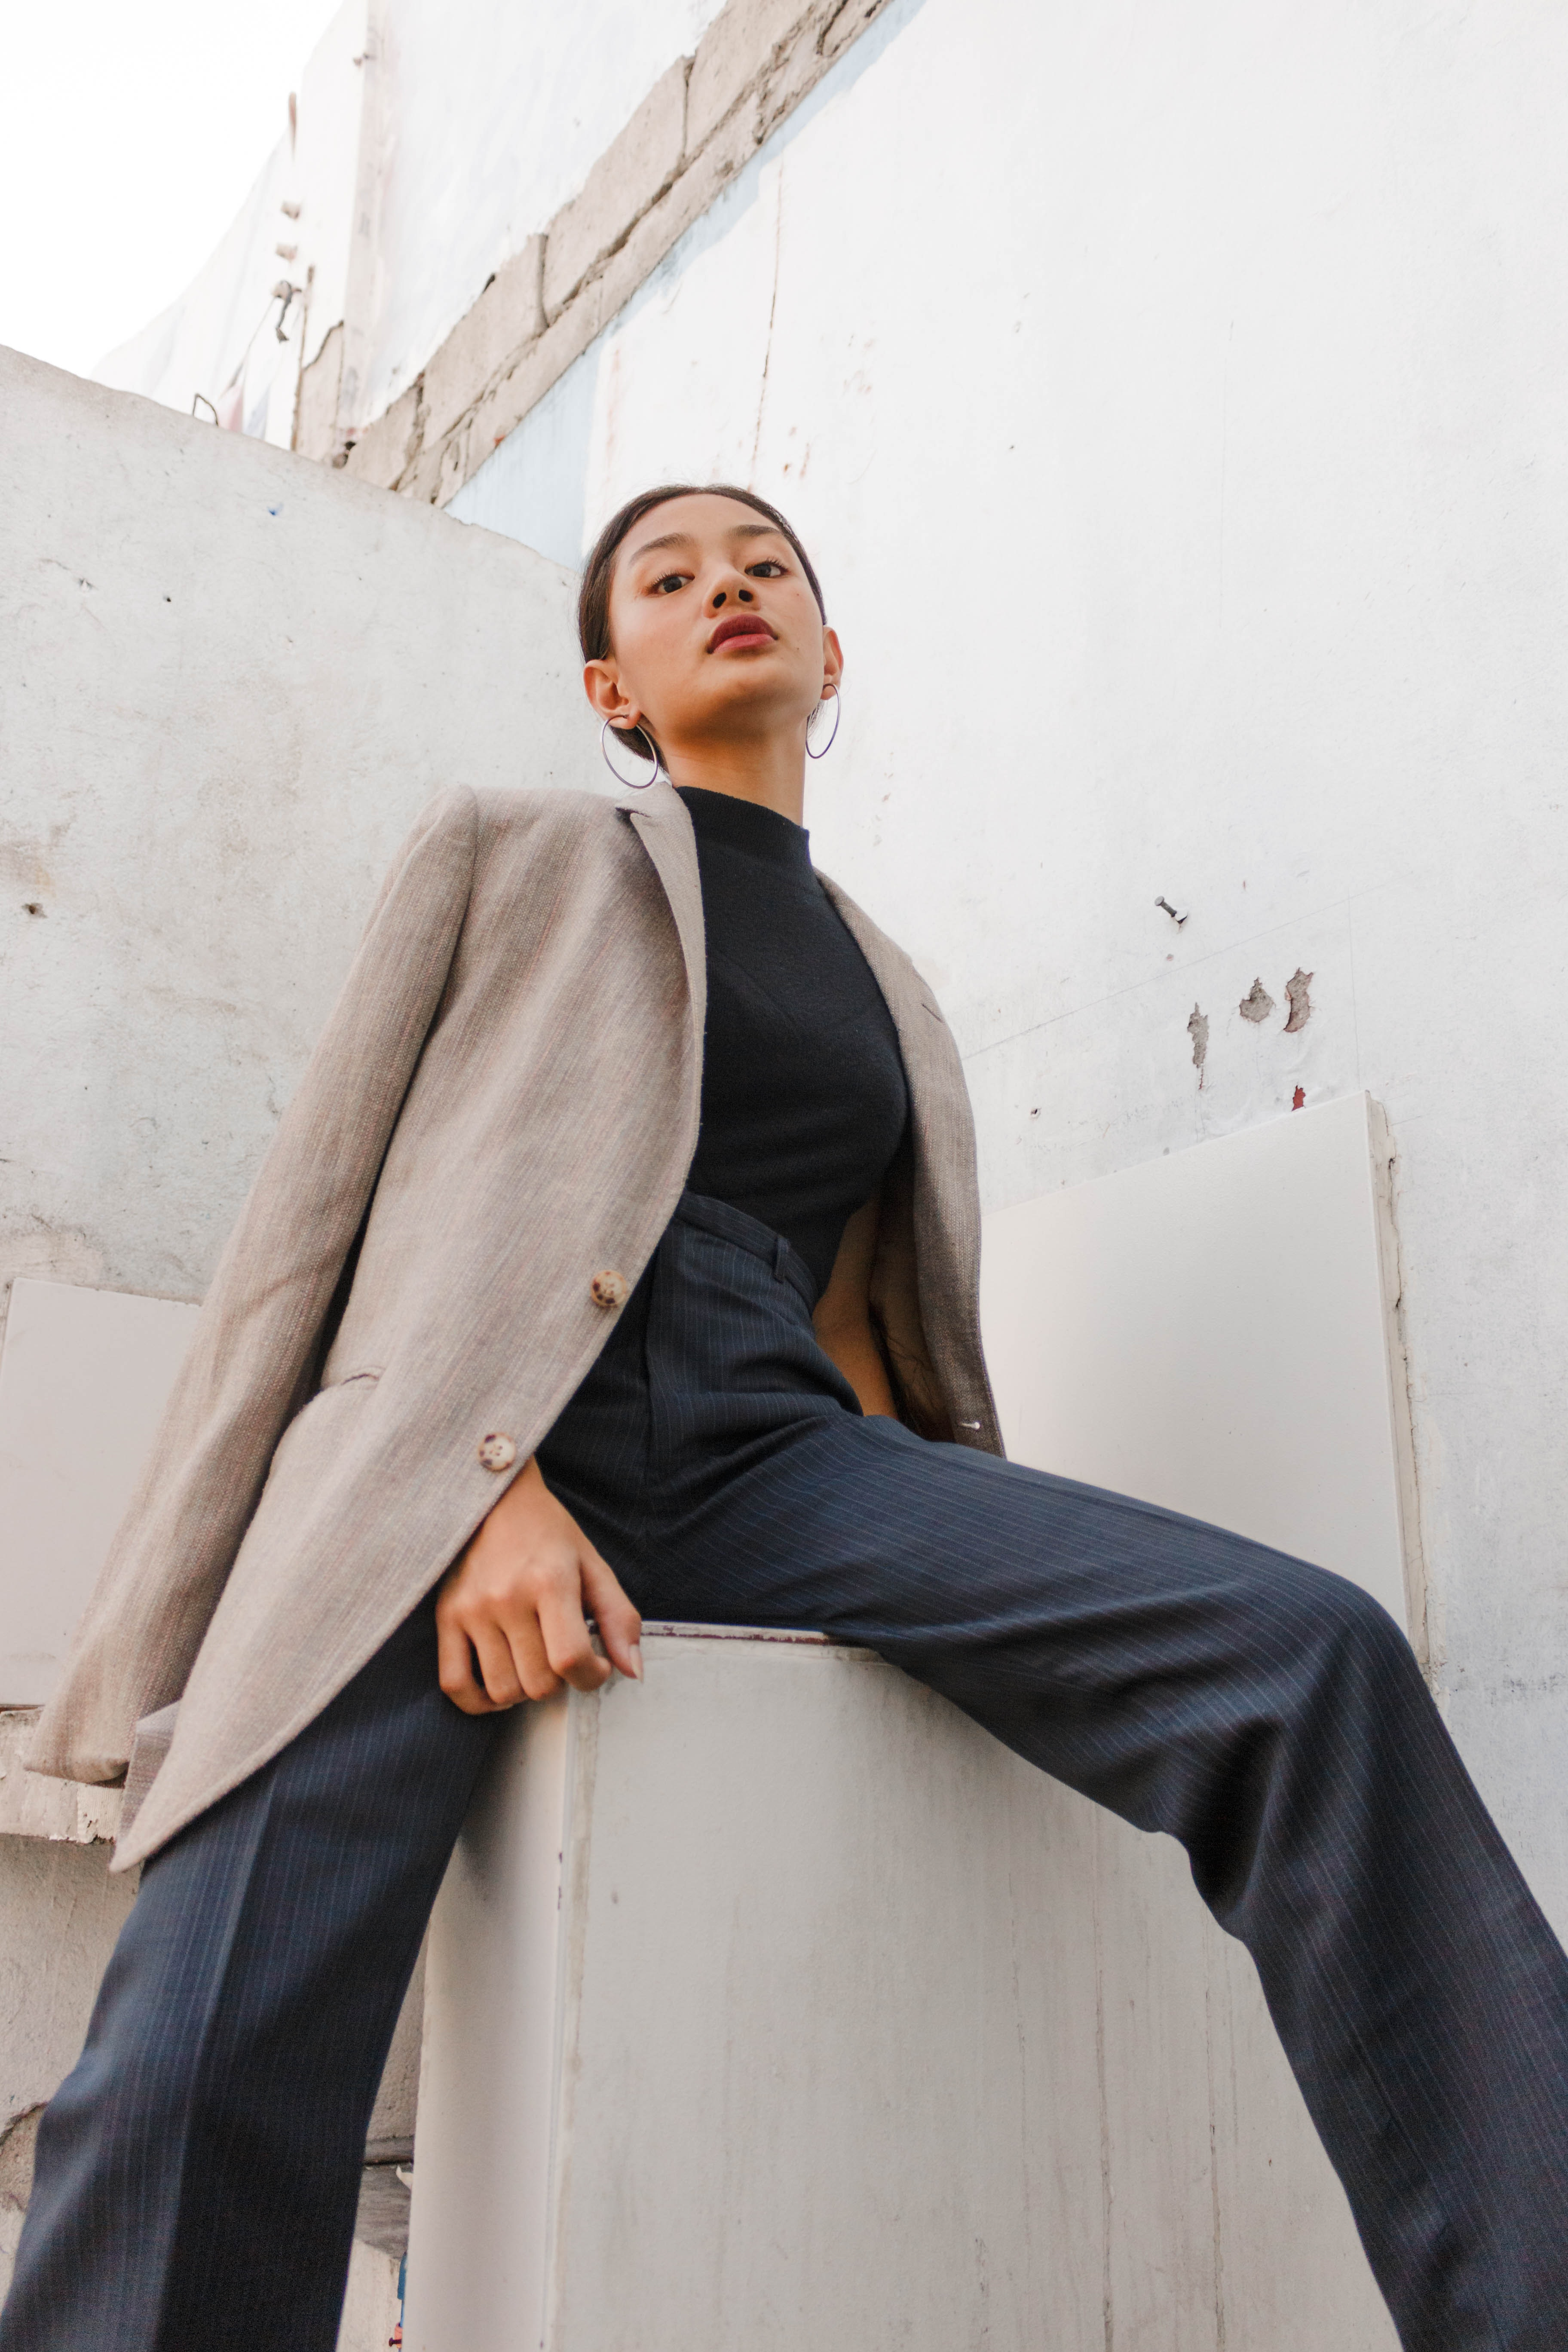 Blazer work outfit ideas for women professional in 2021